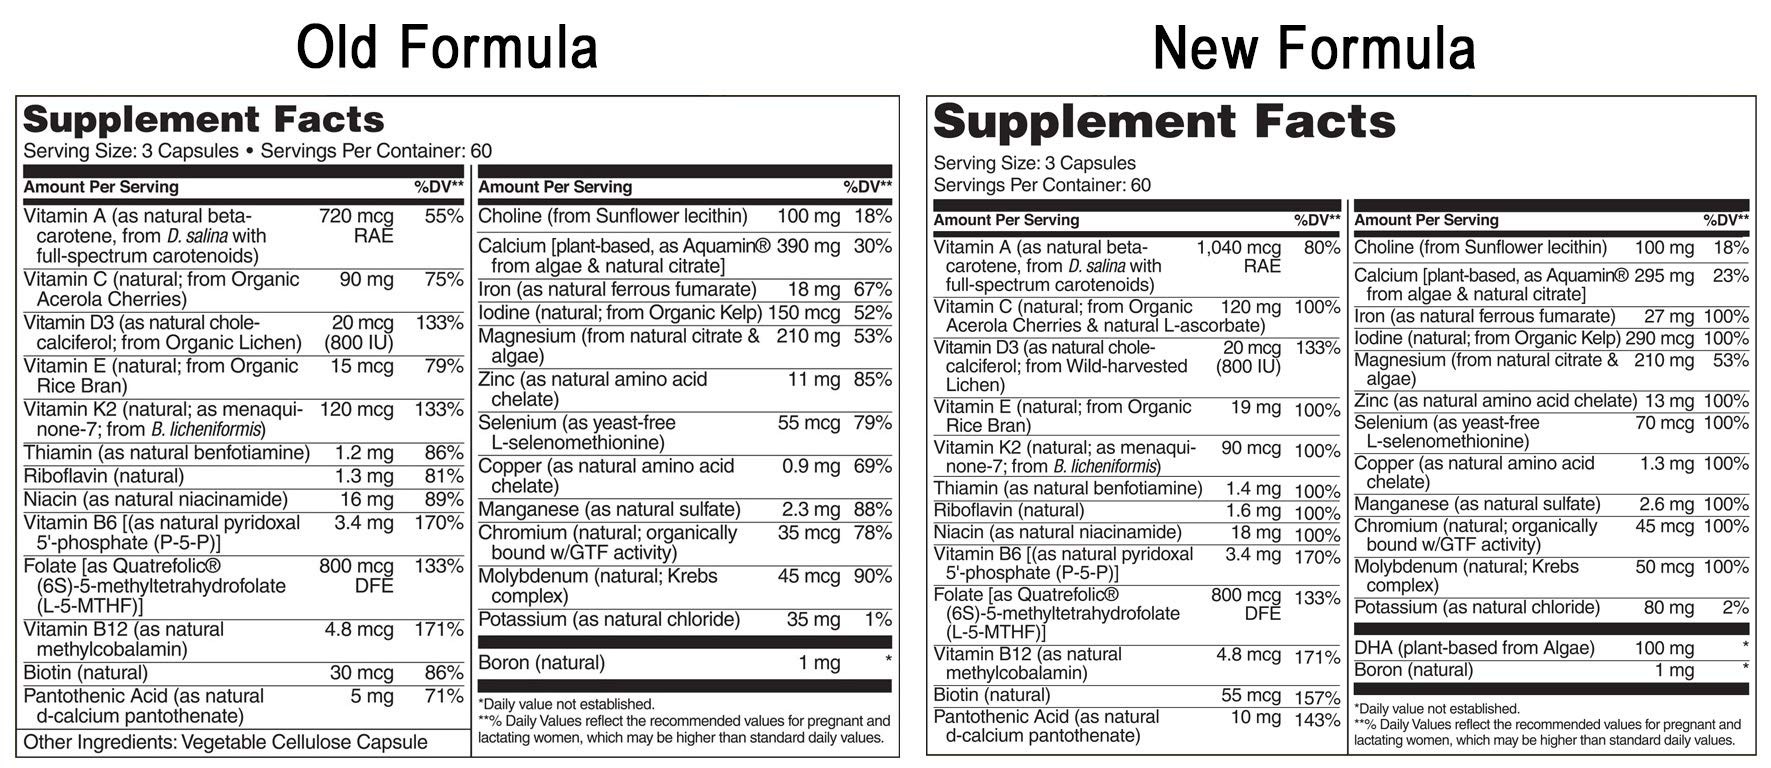 NATURELO Prenatal Whole Food Multivitamin - with Natural Iron, Folate and Calcium - Vegan & Vegetarian - Non-GMO - Gluten Free - 180 Capsules | 2 Month Supply by NATURELO (Image #3)